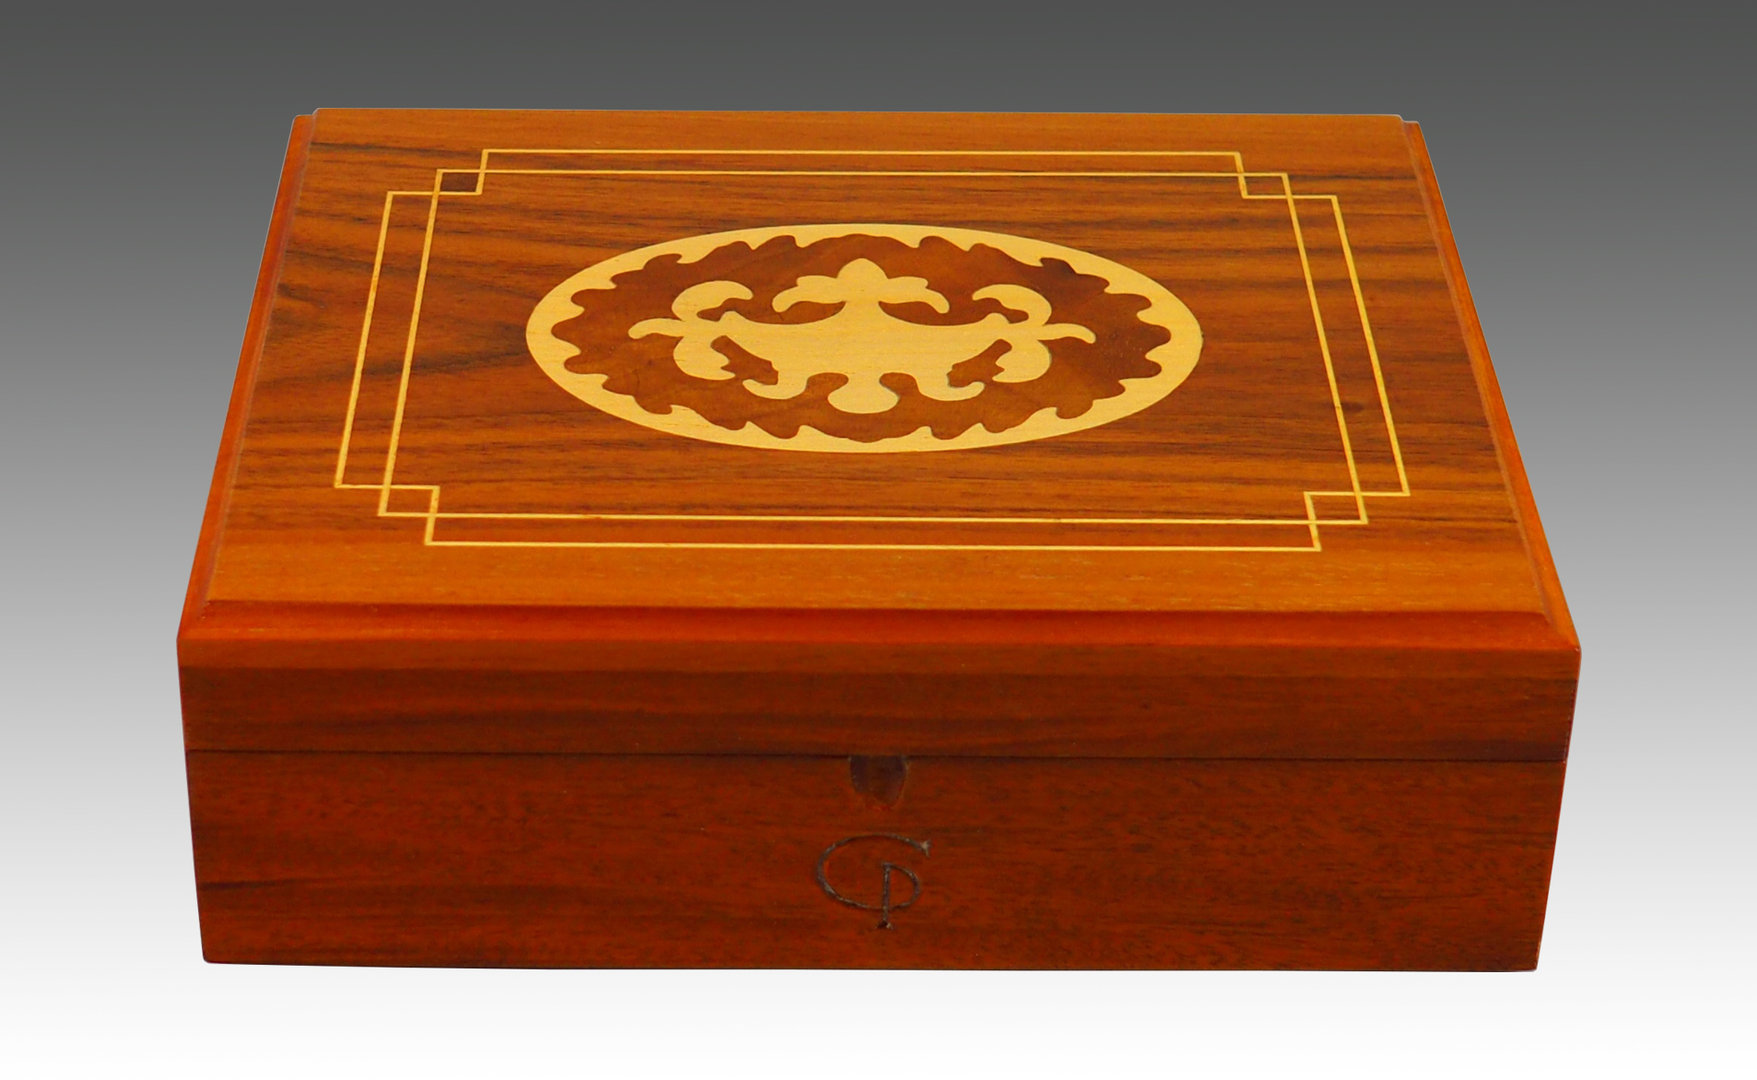 Mahogany, walnut and sycomore box